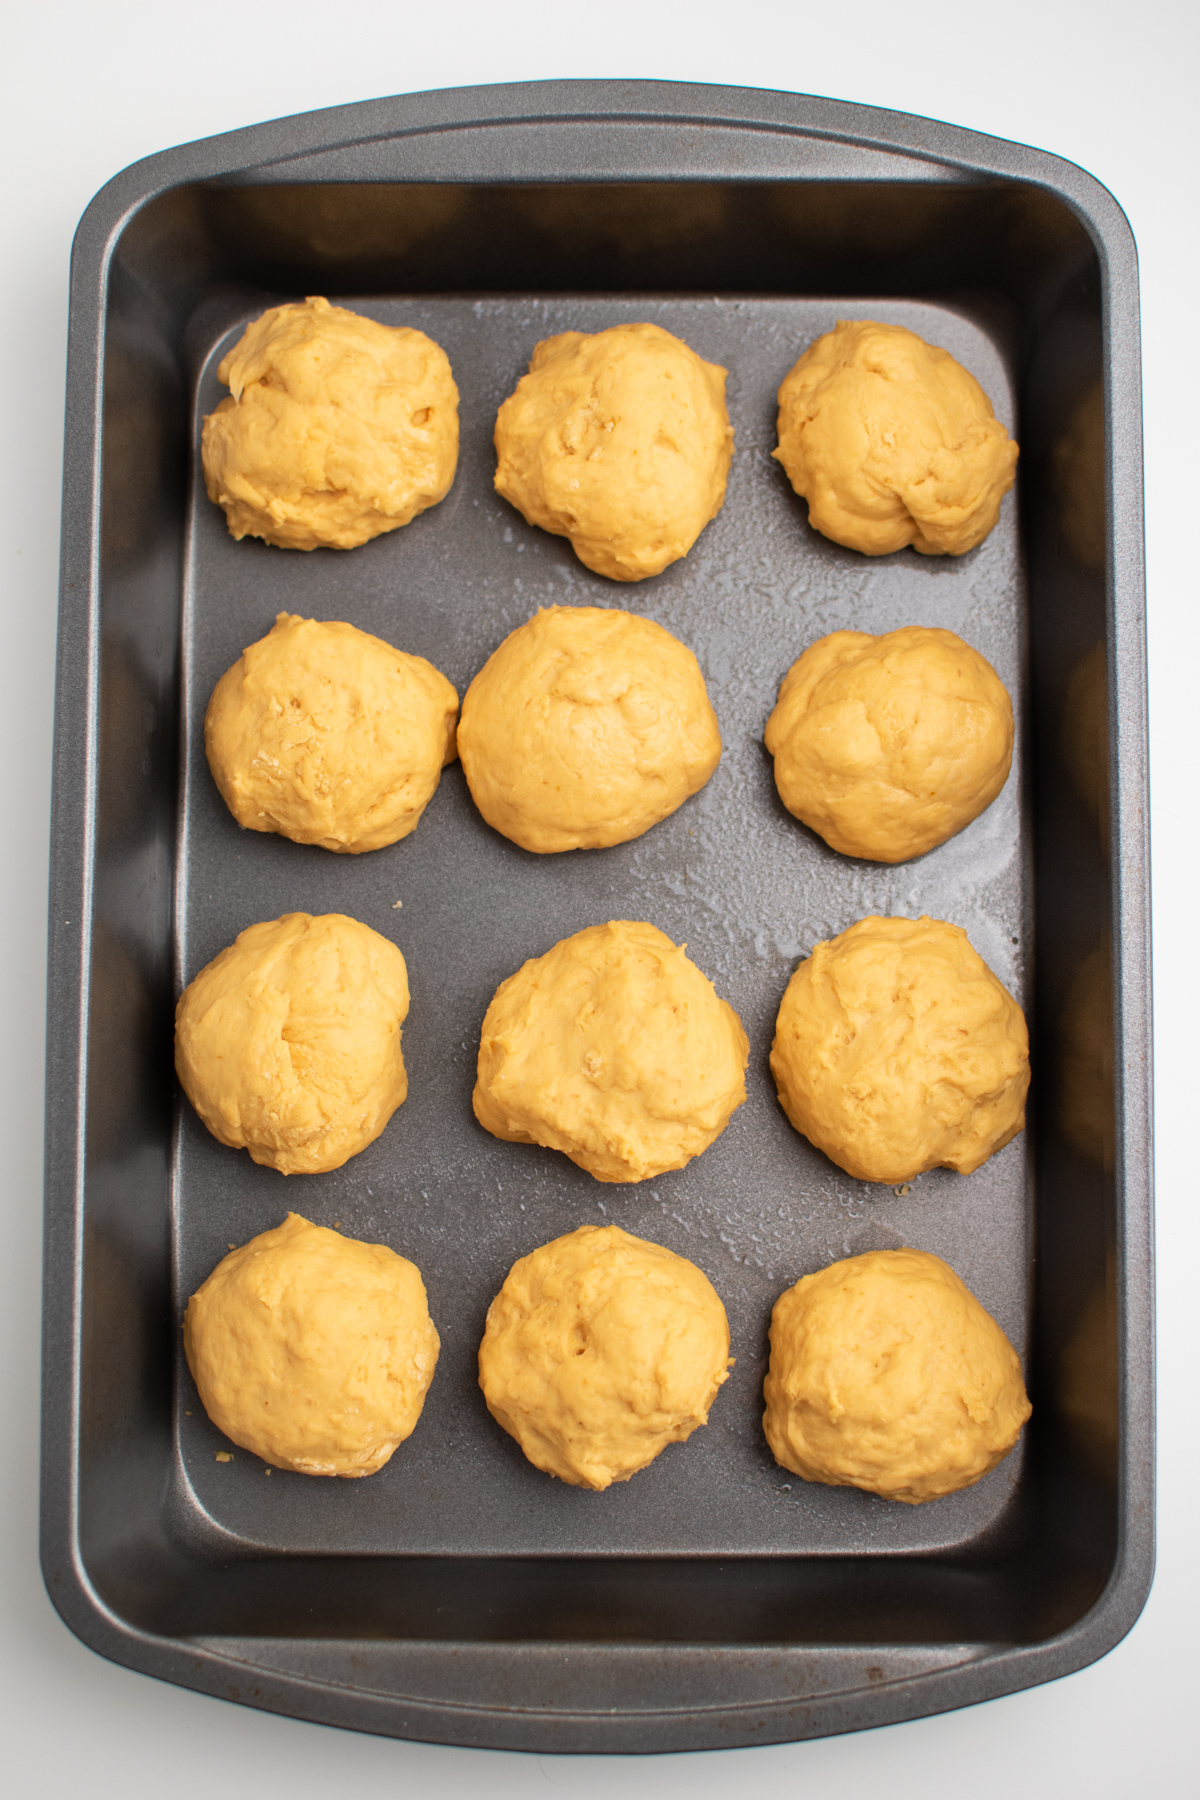 12 uncooked pumpkin dough balls in a greased cake pan.